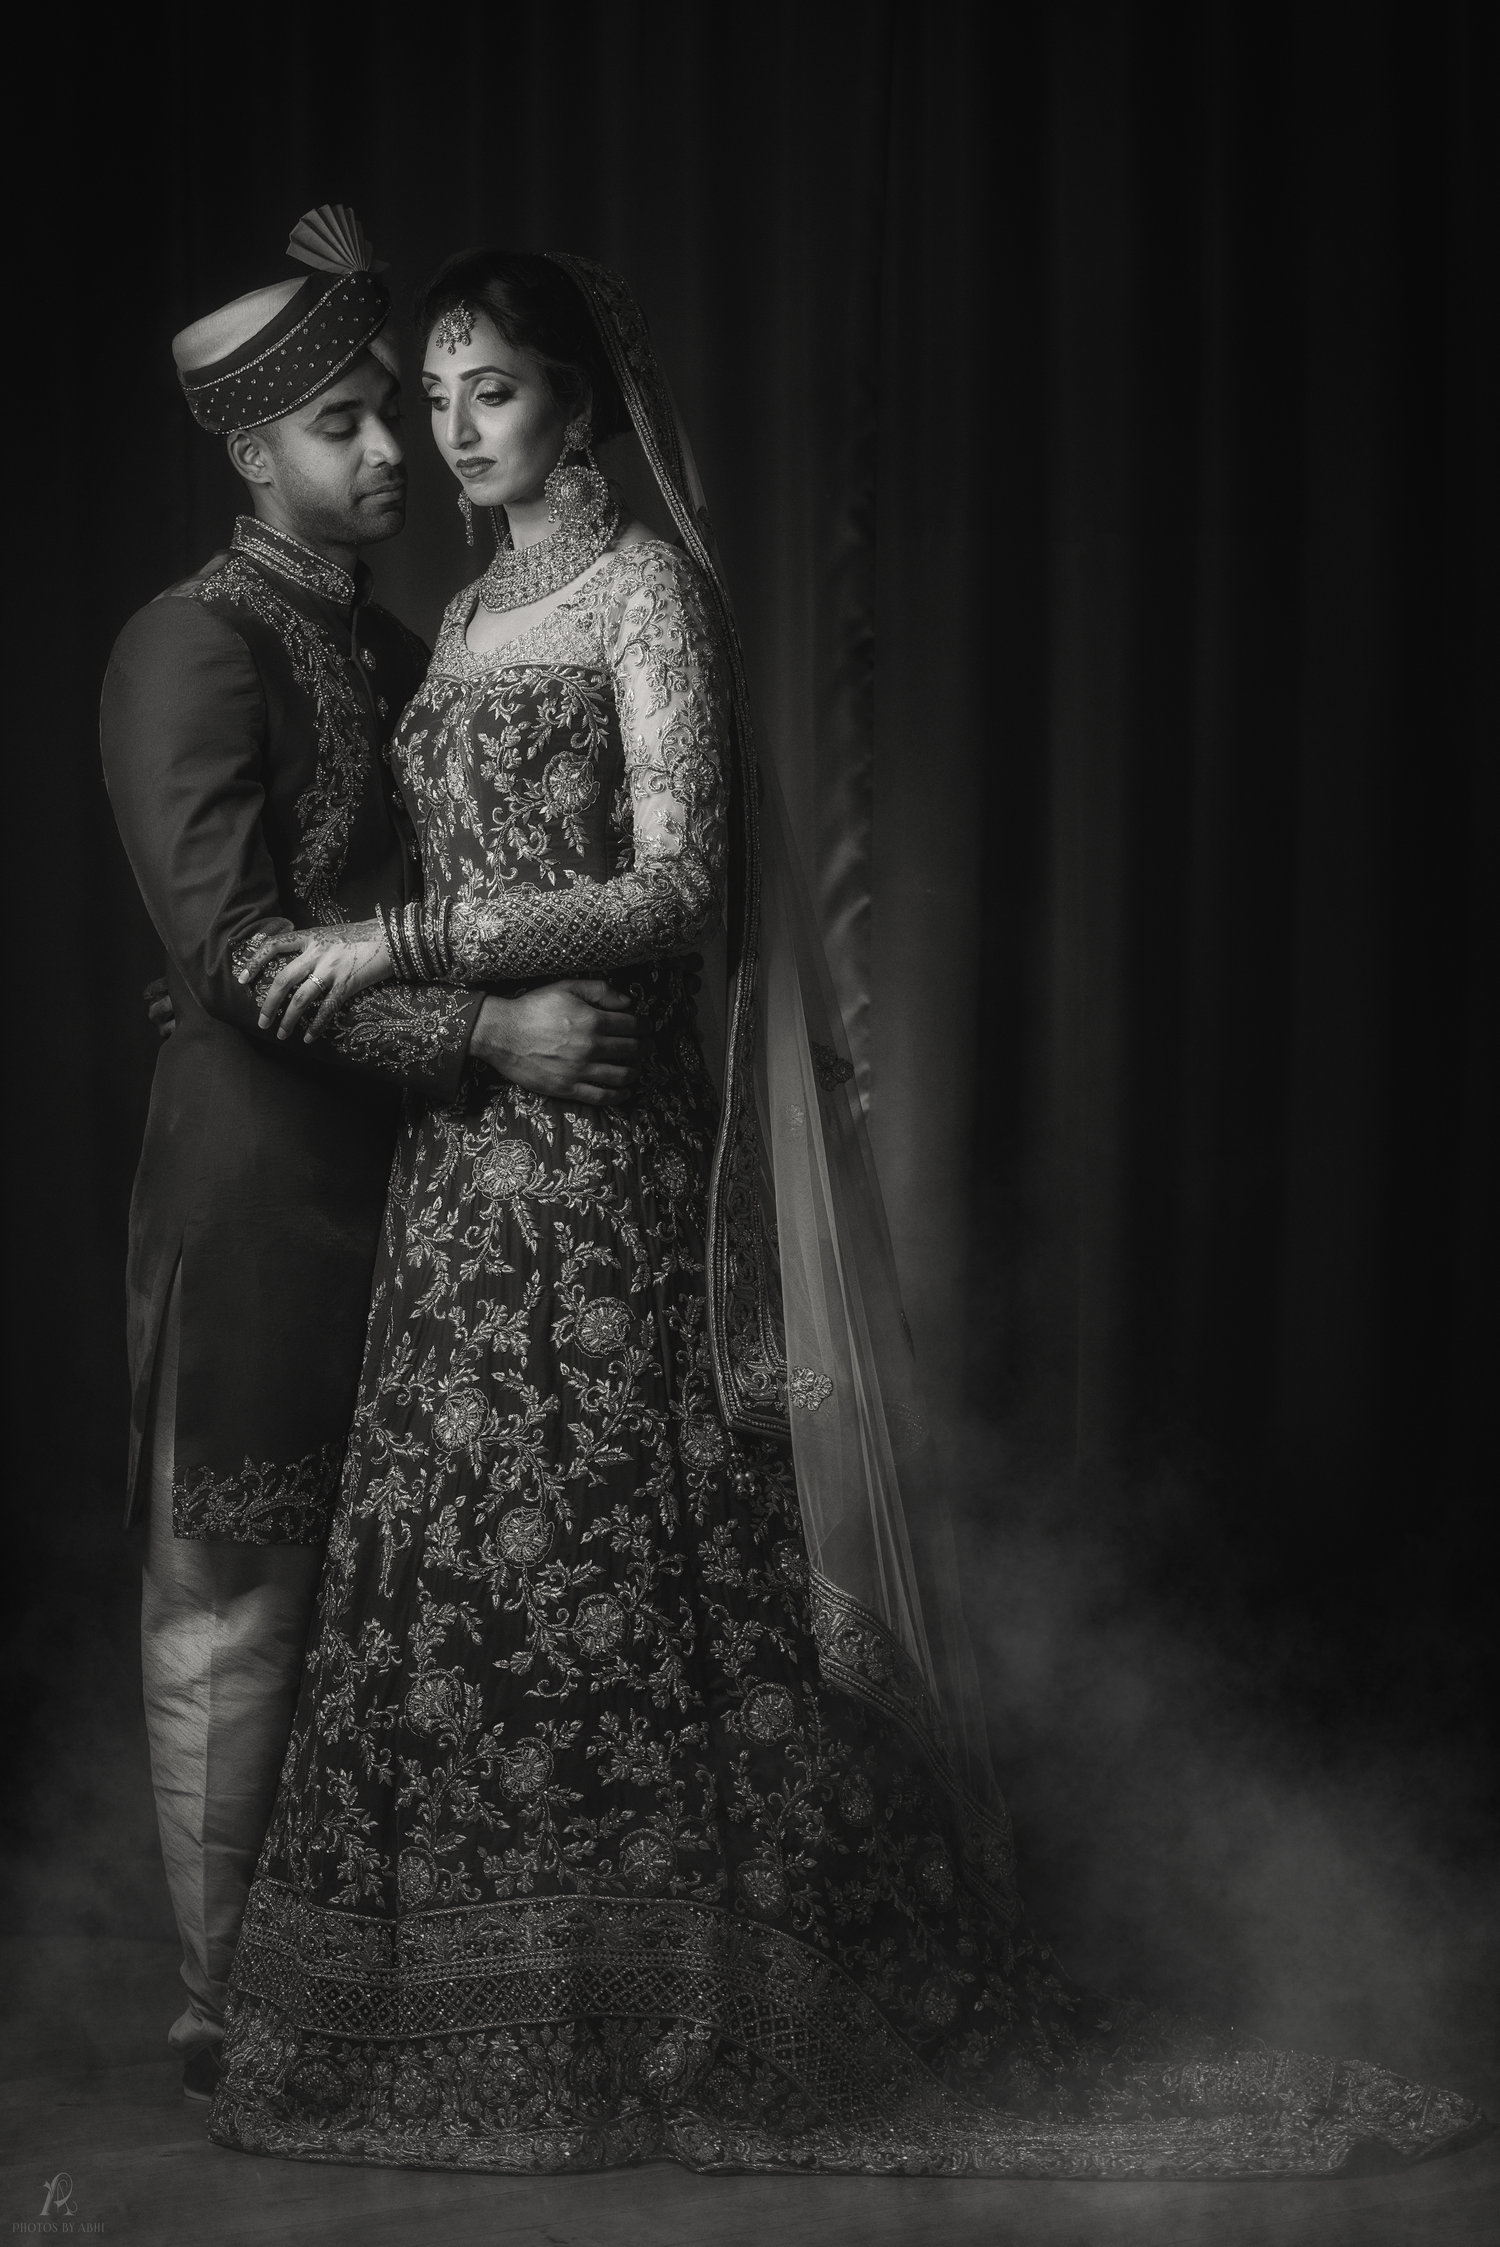 Photos by Abhi - Asian wedding photography Birmingham - Aston Hall